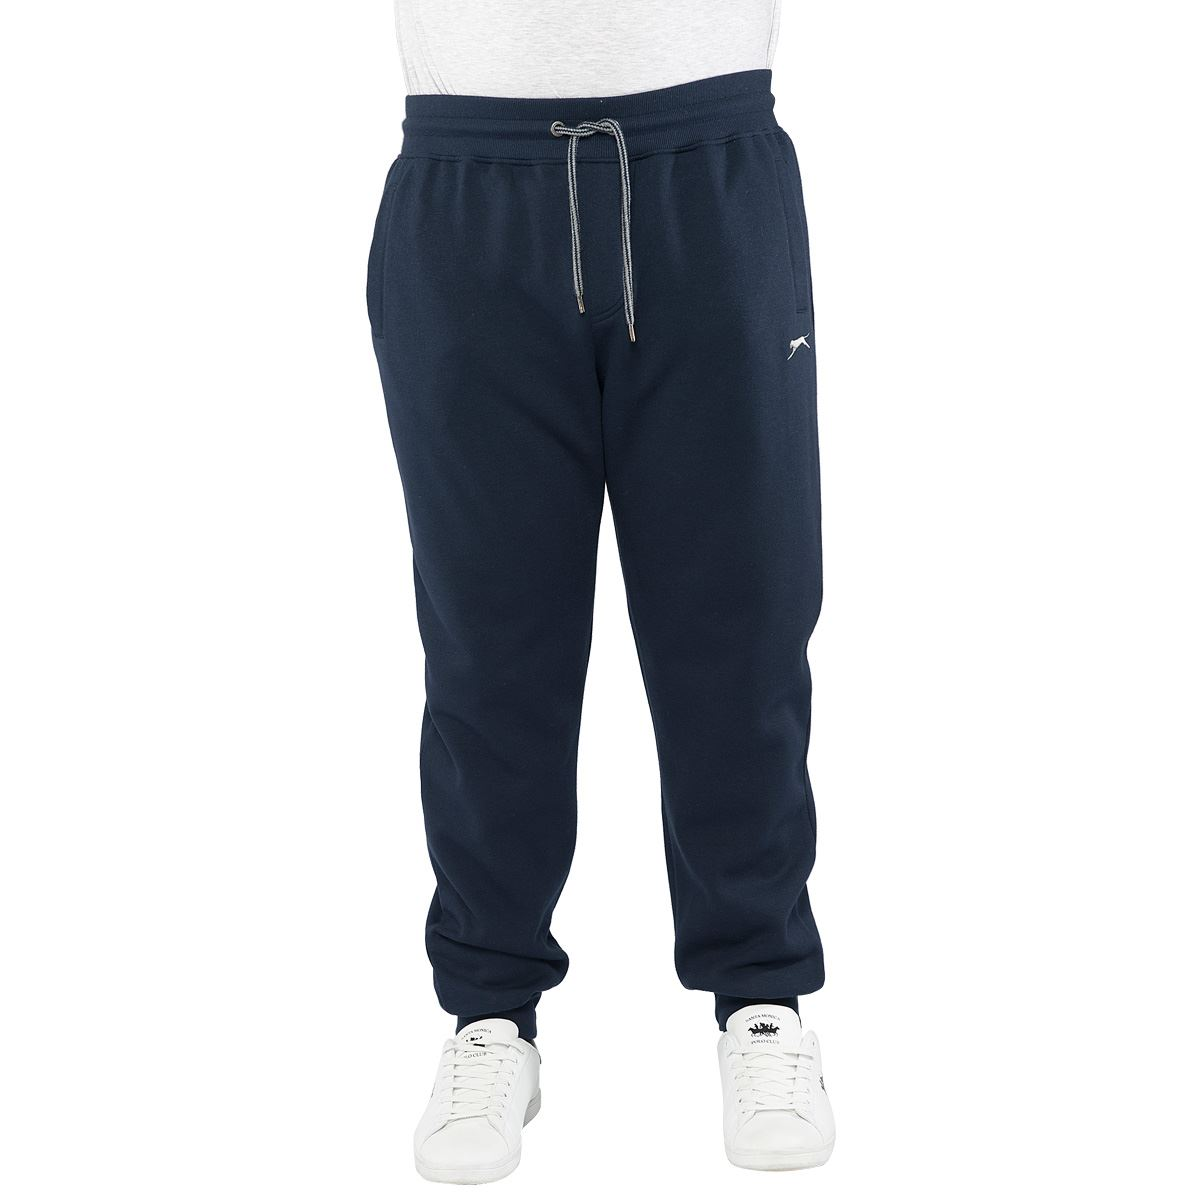 Find great deals on eBay for mens plus size pants. Shop with confidence.